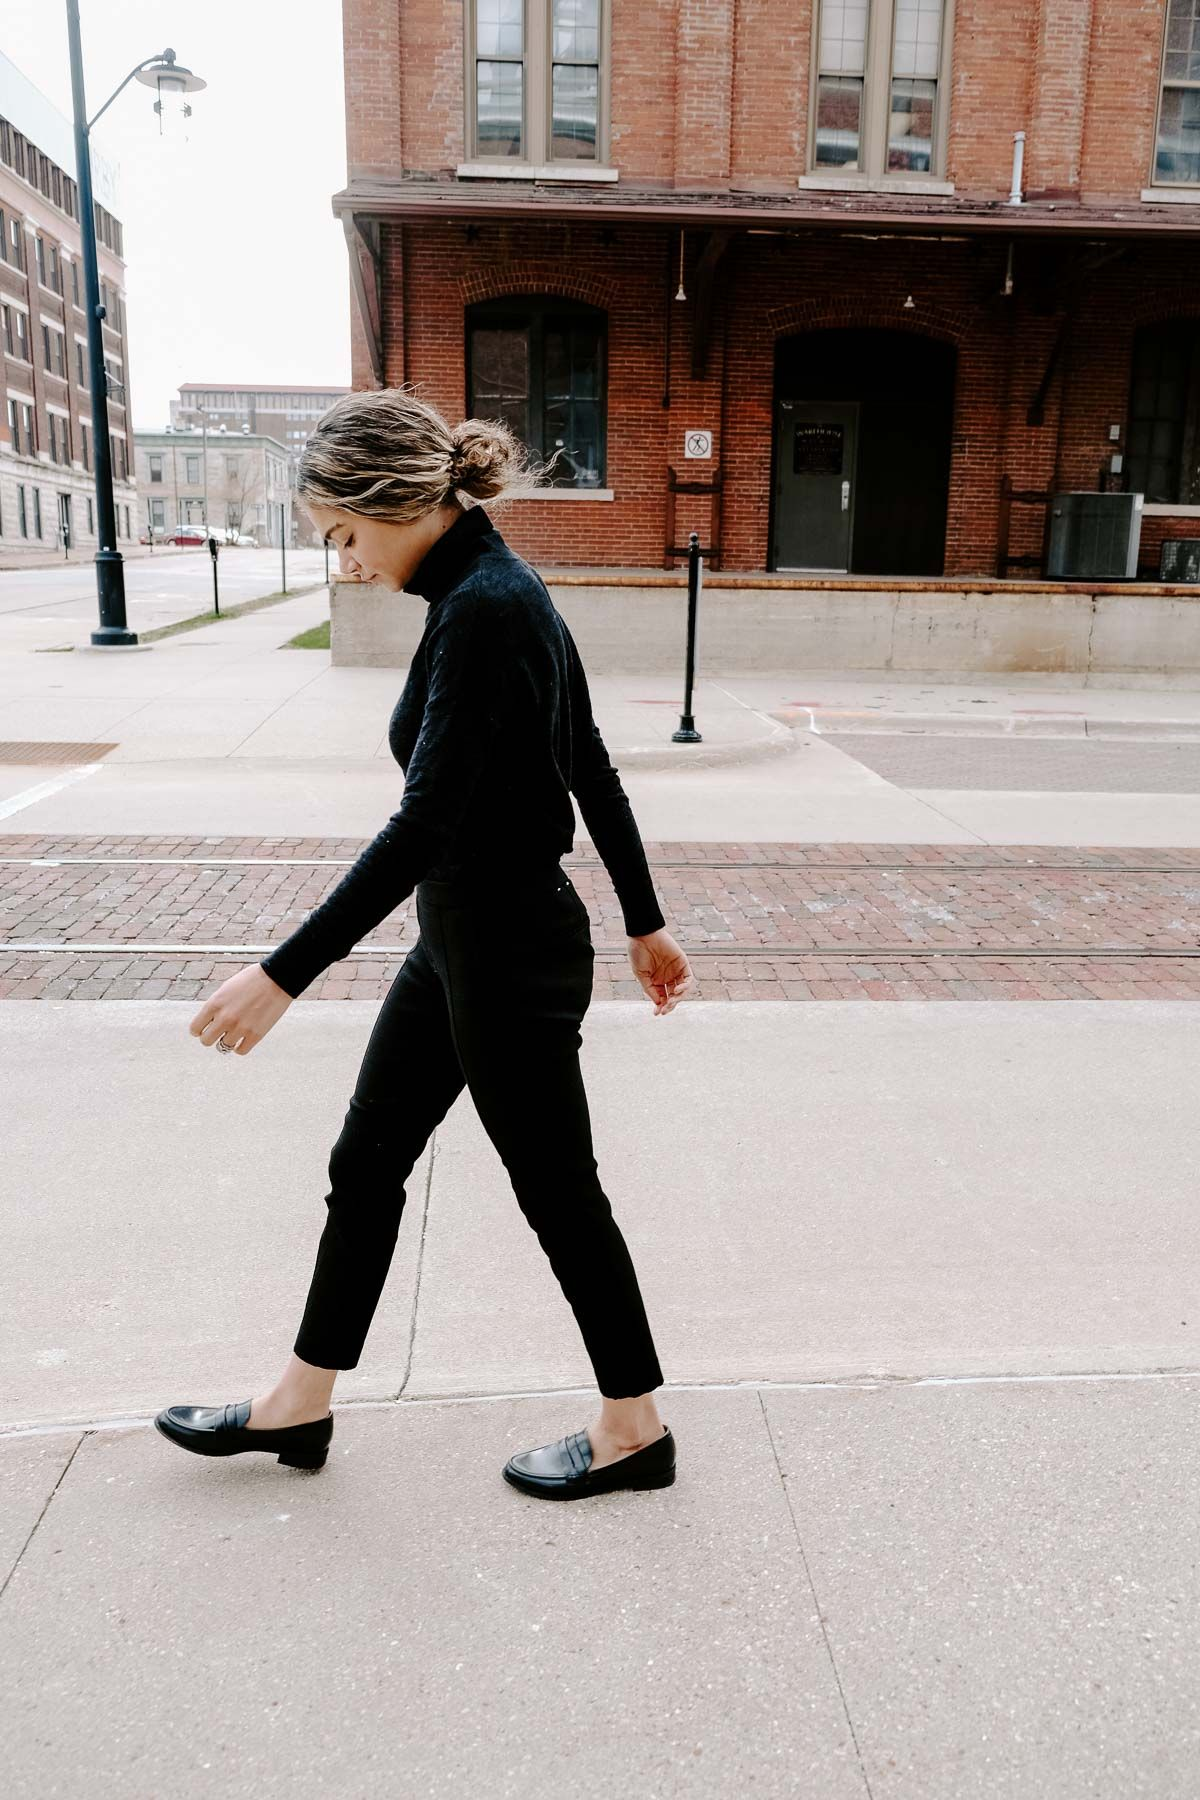 Audrey Hepburn's style is a great place to all your french outfit inspiration from. She was classic, timeless, and nailed Parisian chic! This all black outfit with loafers is simple, yet perfect.